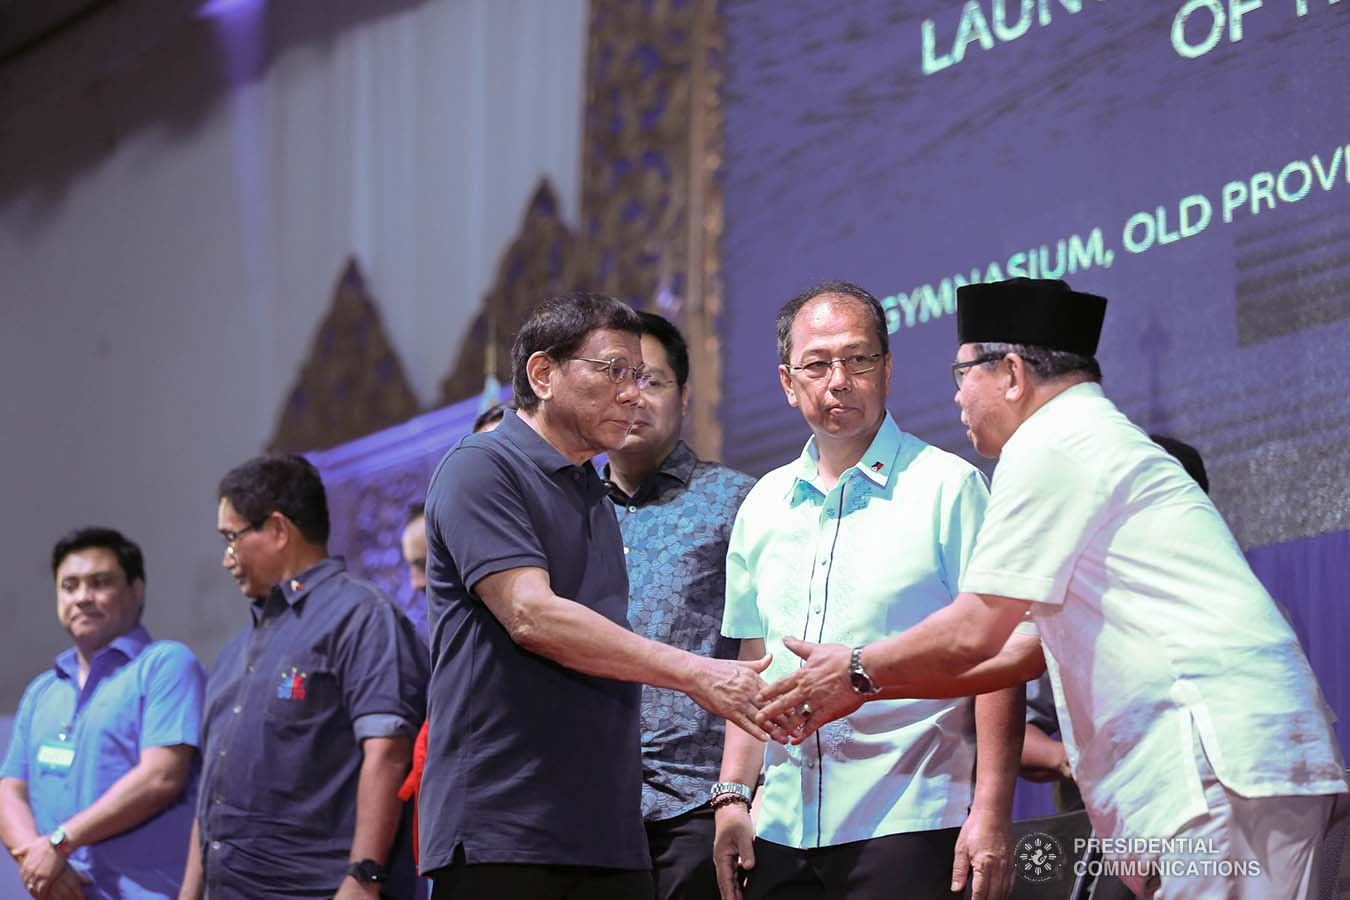 President Rodrigo Roa Duterte is greeted by Bangsamoro Autonomous Region in Muslim Mindanao (BARMM) Interim Chief Minister Al Haj Murad Ebrahim during the launch of the second phase of the decommissioning of Moro Islamic Liberation Front combatants and weapons at the Old Provincial Capitol Compound in Sultan Kudarat, Maguindanao on September 7, 2019. KARL NORMAN ALONZO/PRESIDENTIAL PHOTO